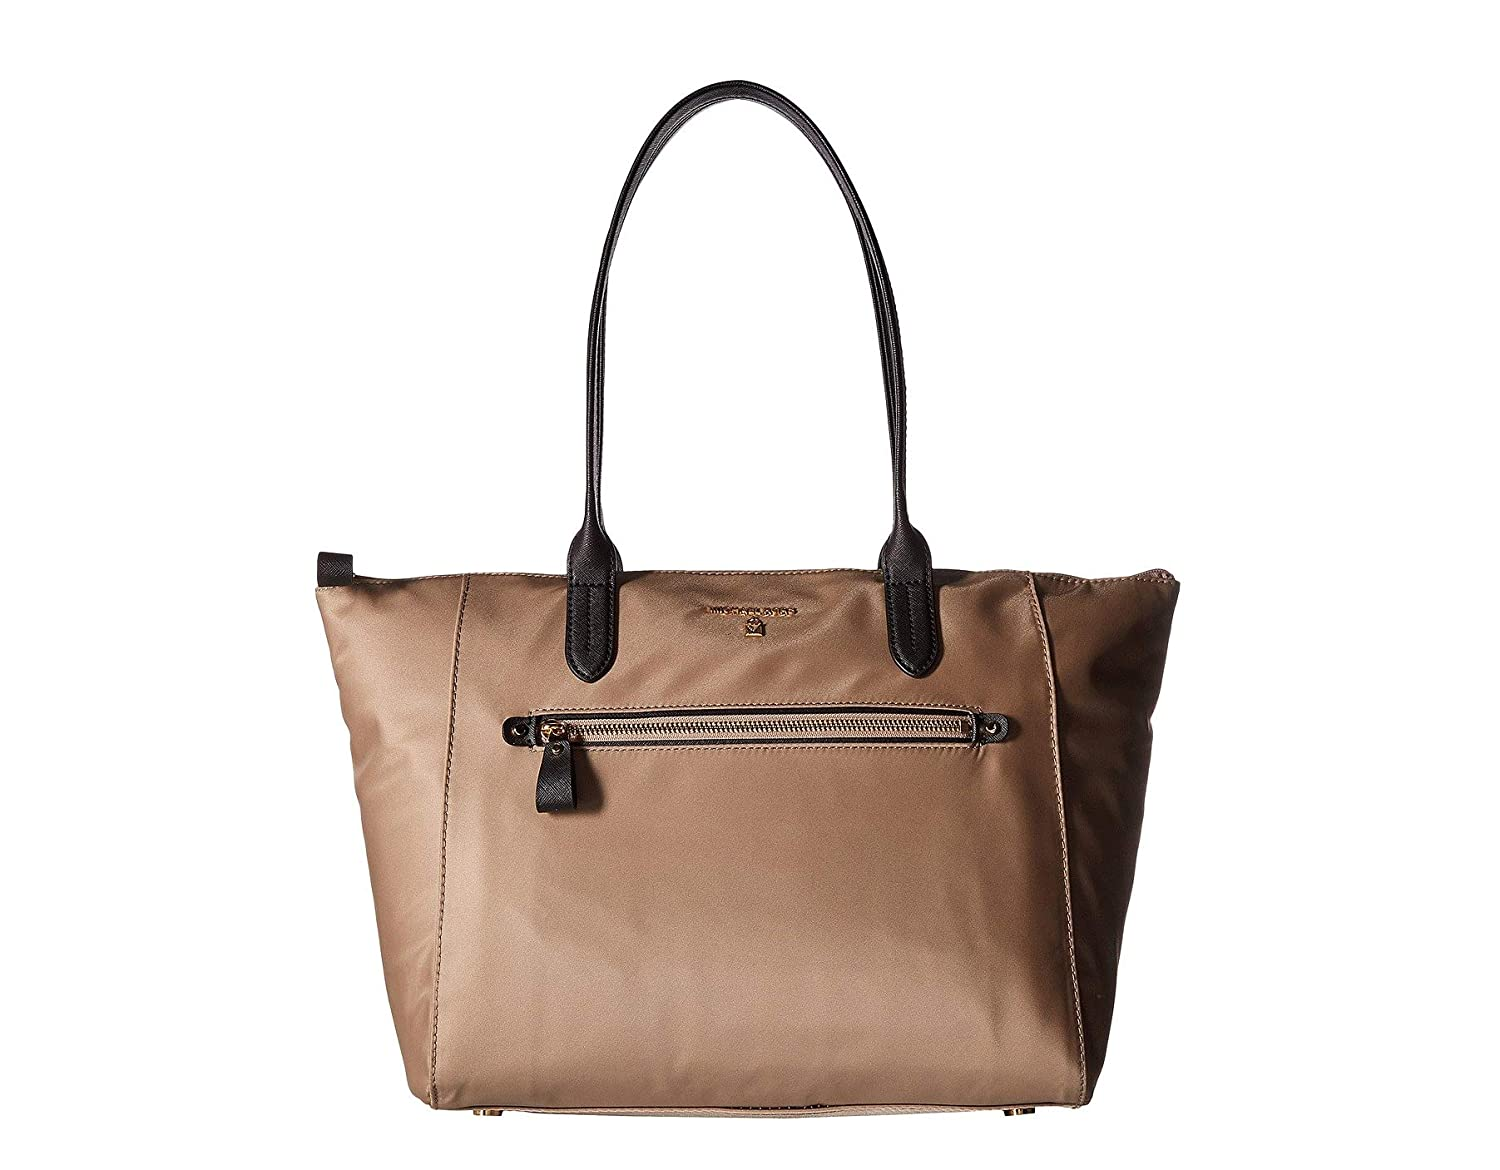 71fcc1c66ee5 Michael Kors Kelsey Large Nylon Tote- Truffle  Amazon.in  Clothing    Accessories